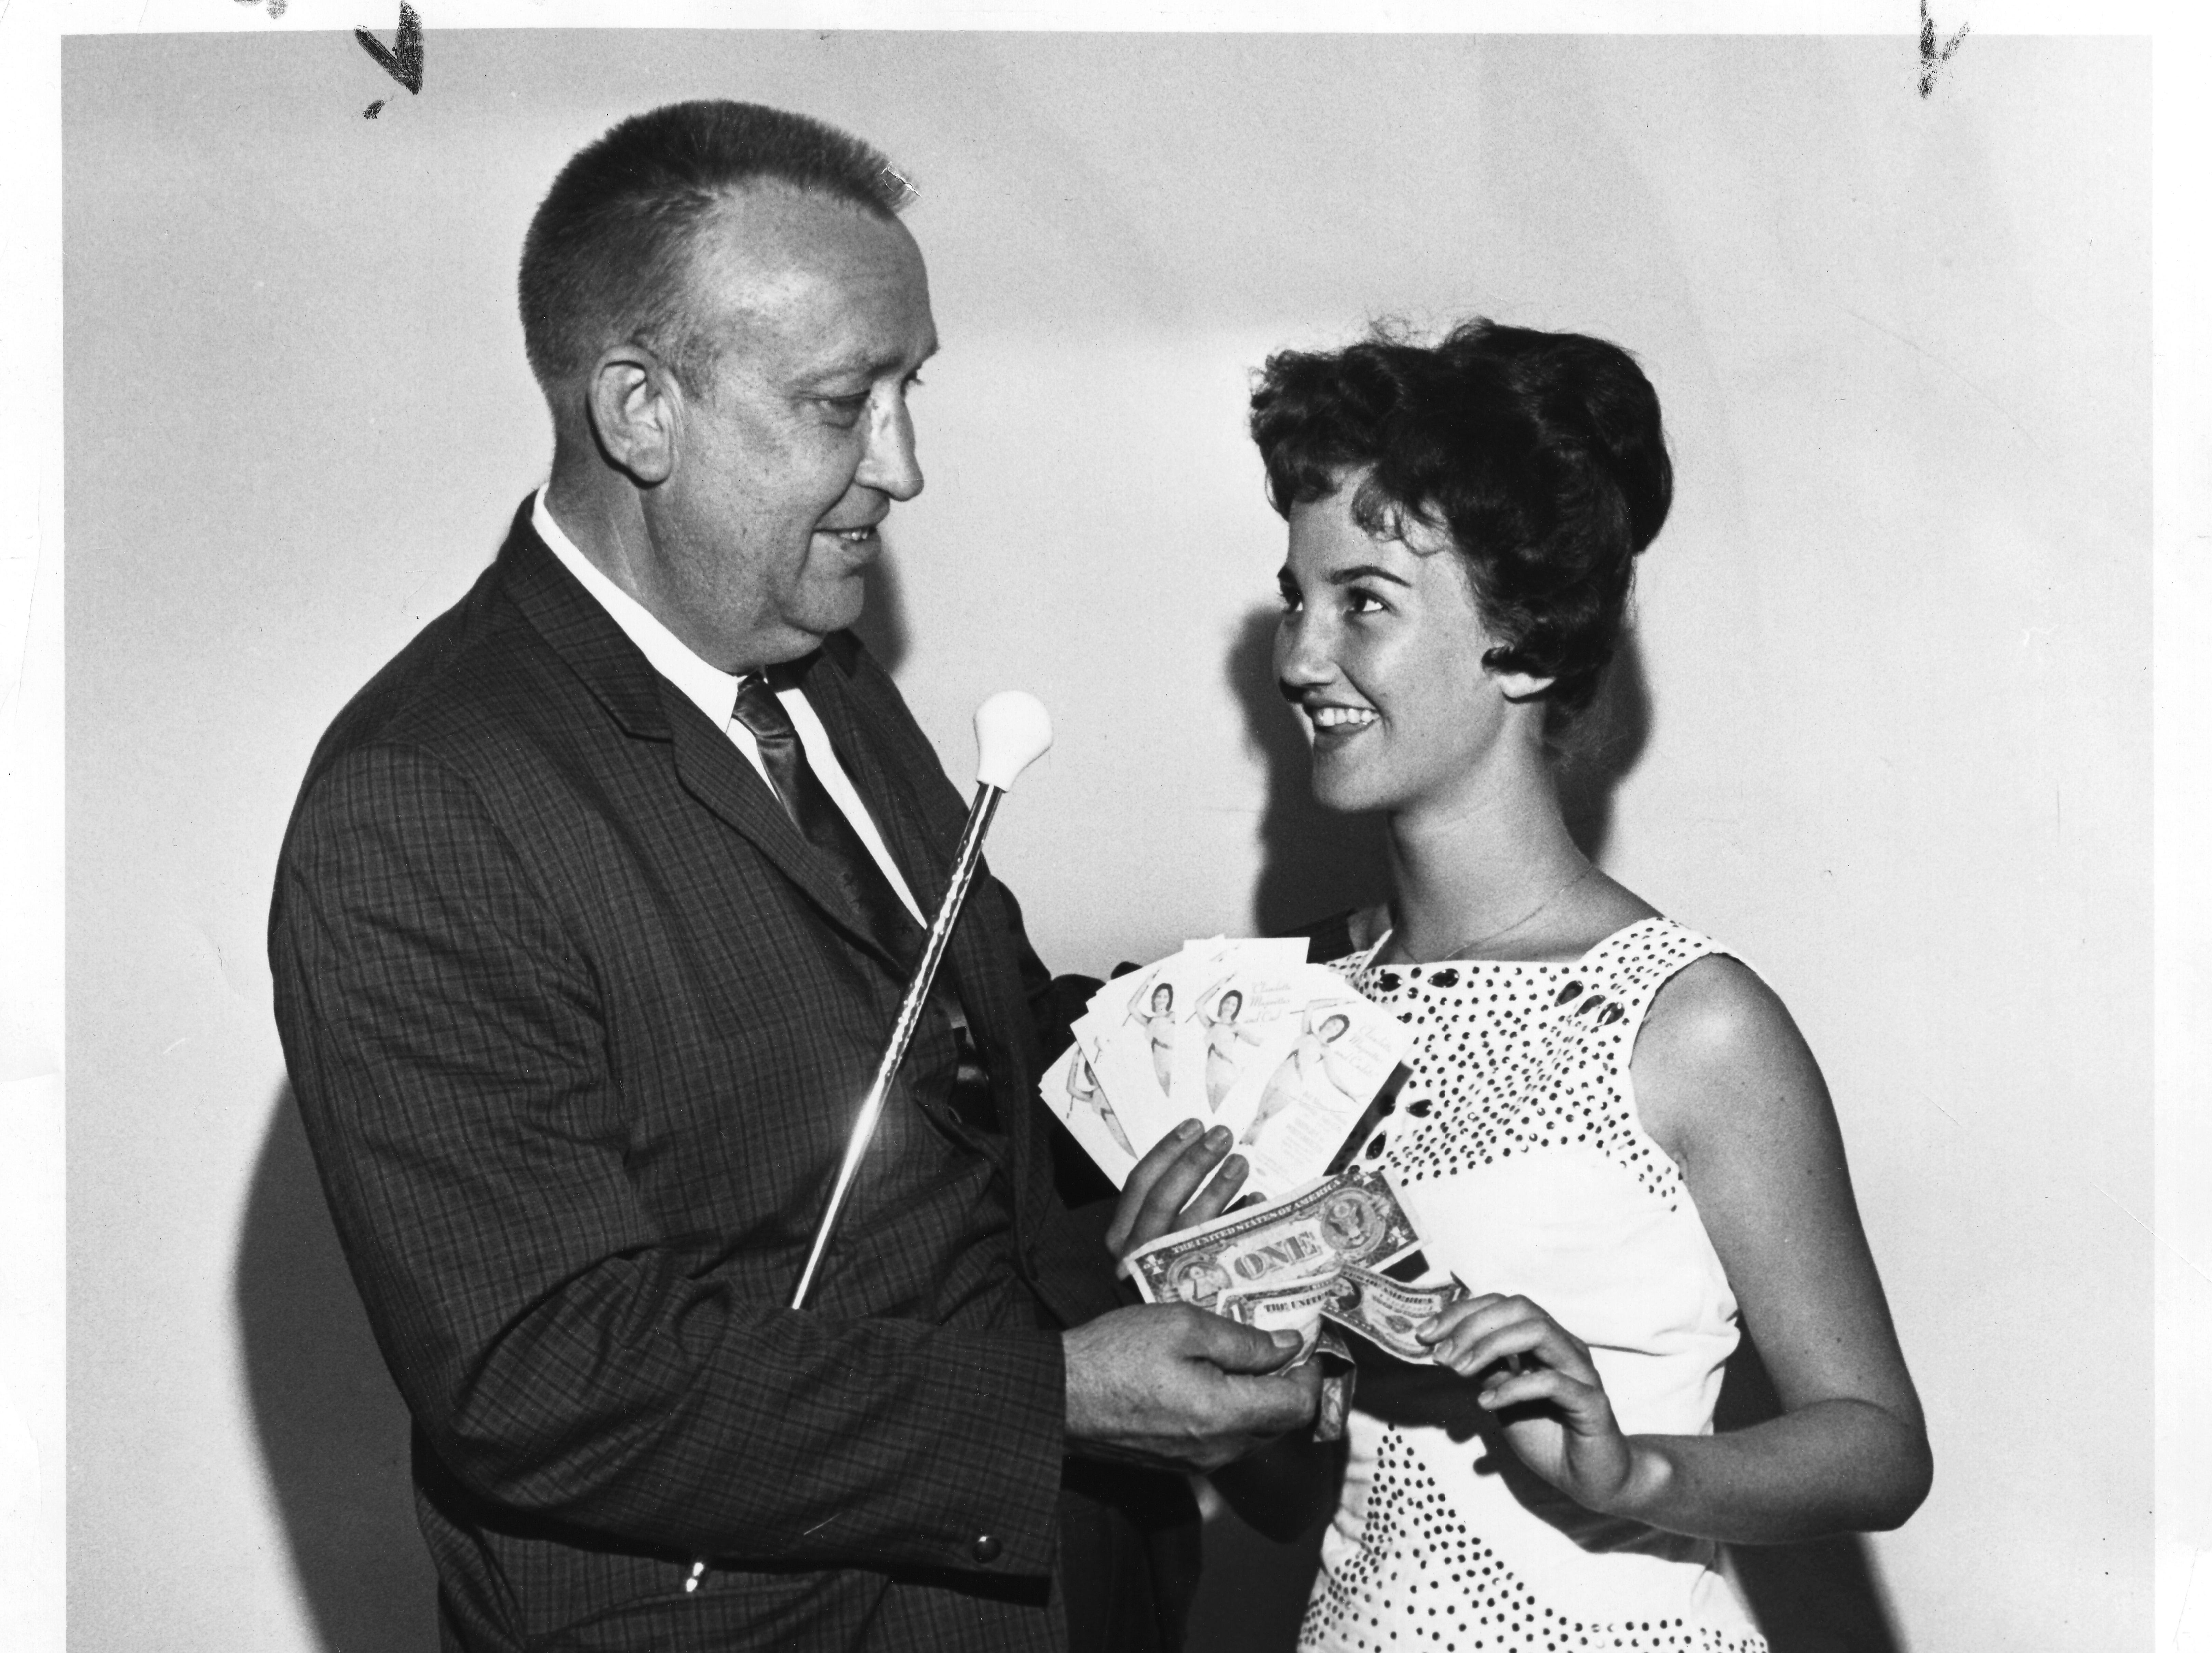 University of Tennessee majorette Claudette Riley and Knoxville Smokies owner Neal Ridley. She was a 1980 inductee into the Tennessee Sports Hall of Fame.